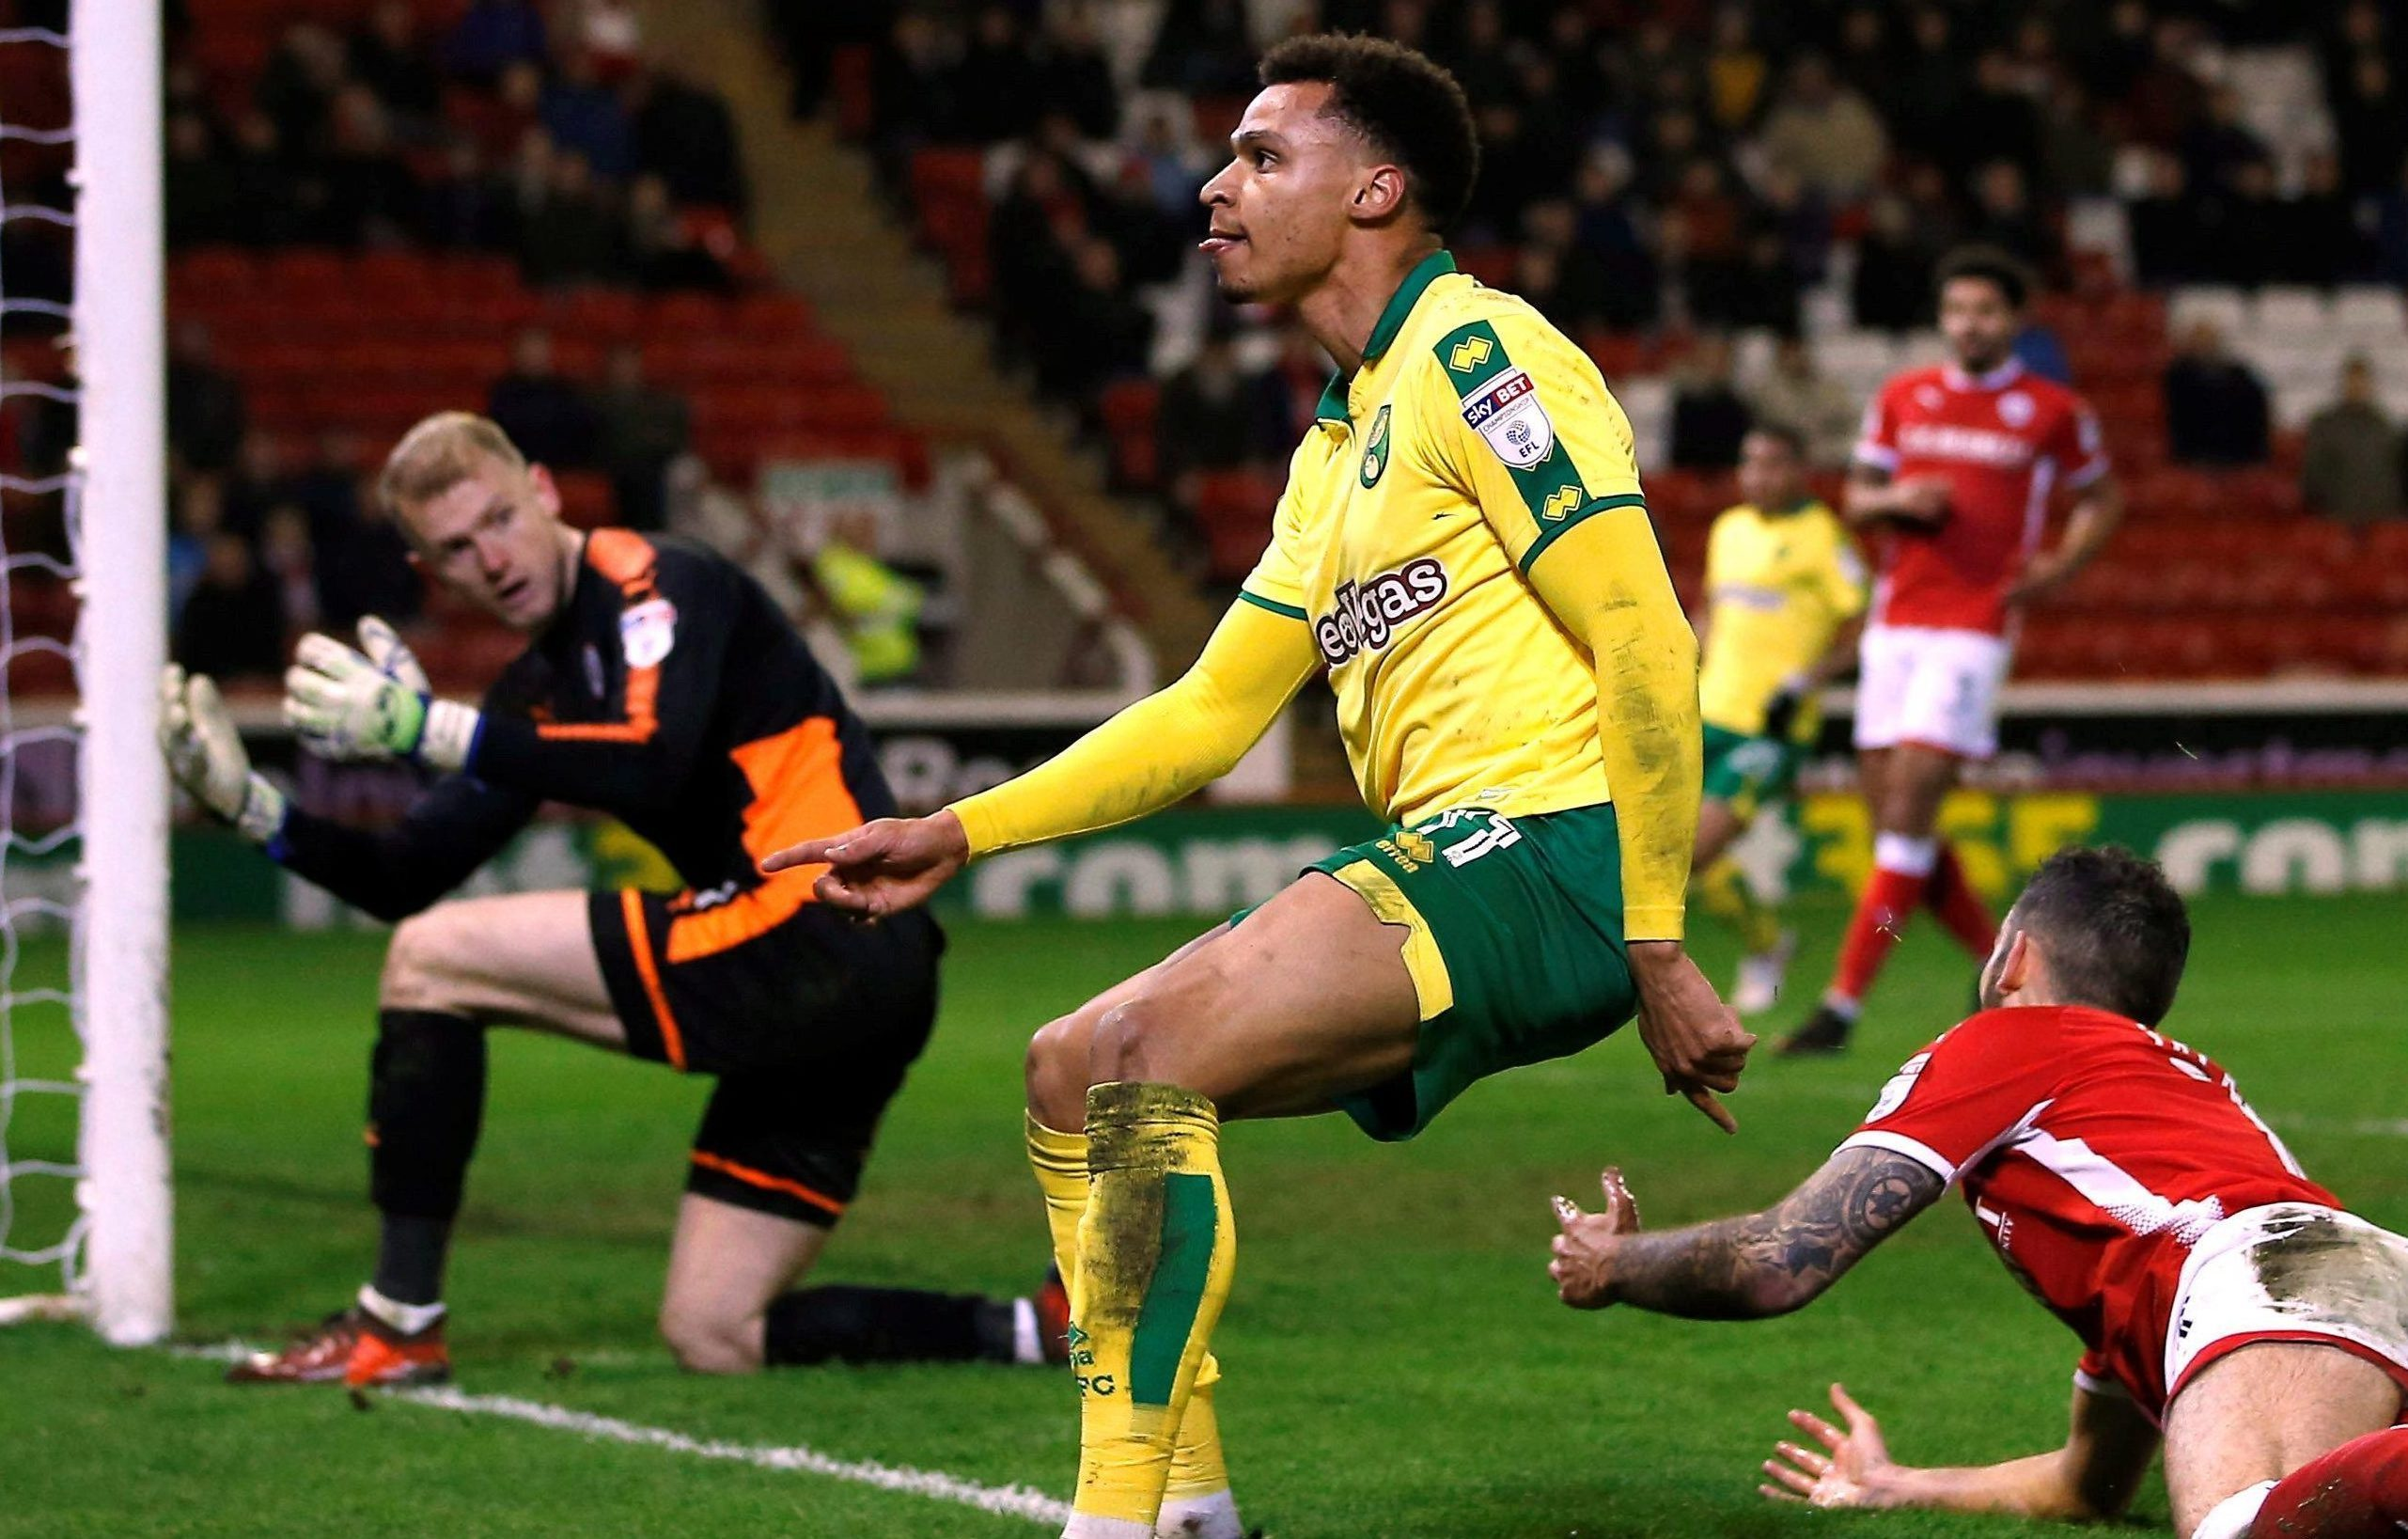 Barnsley 1 Norwich 1: Josh Murphy cracker saves Canaries after Oli McBurnie keeps up hot streak for lowly Tykes